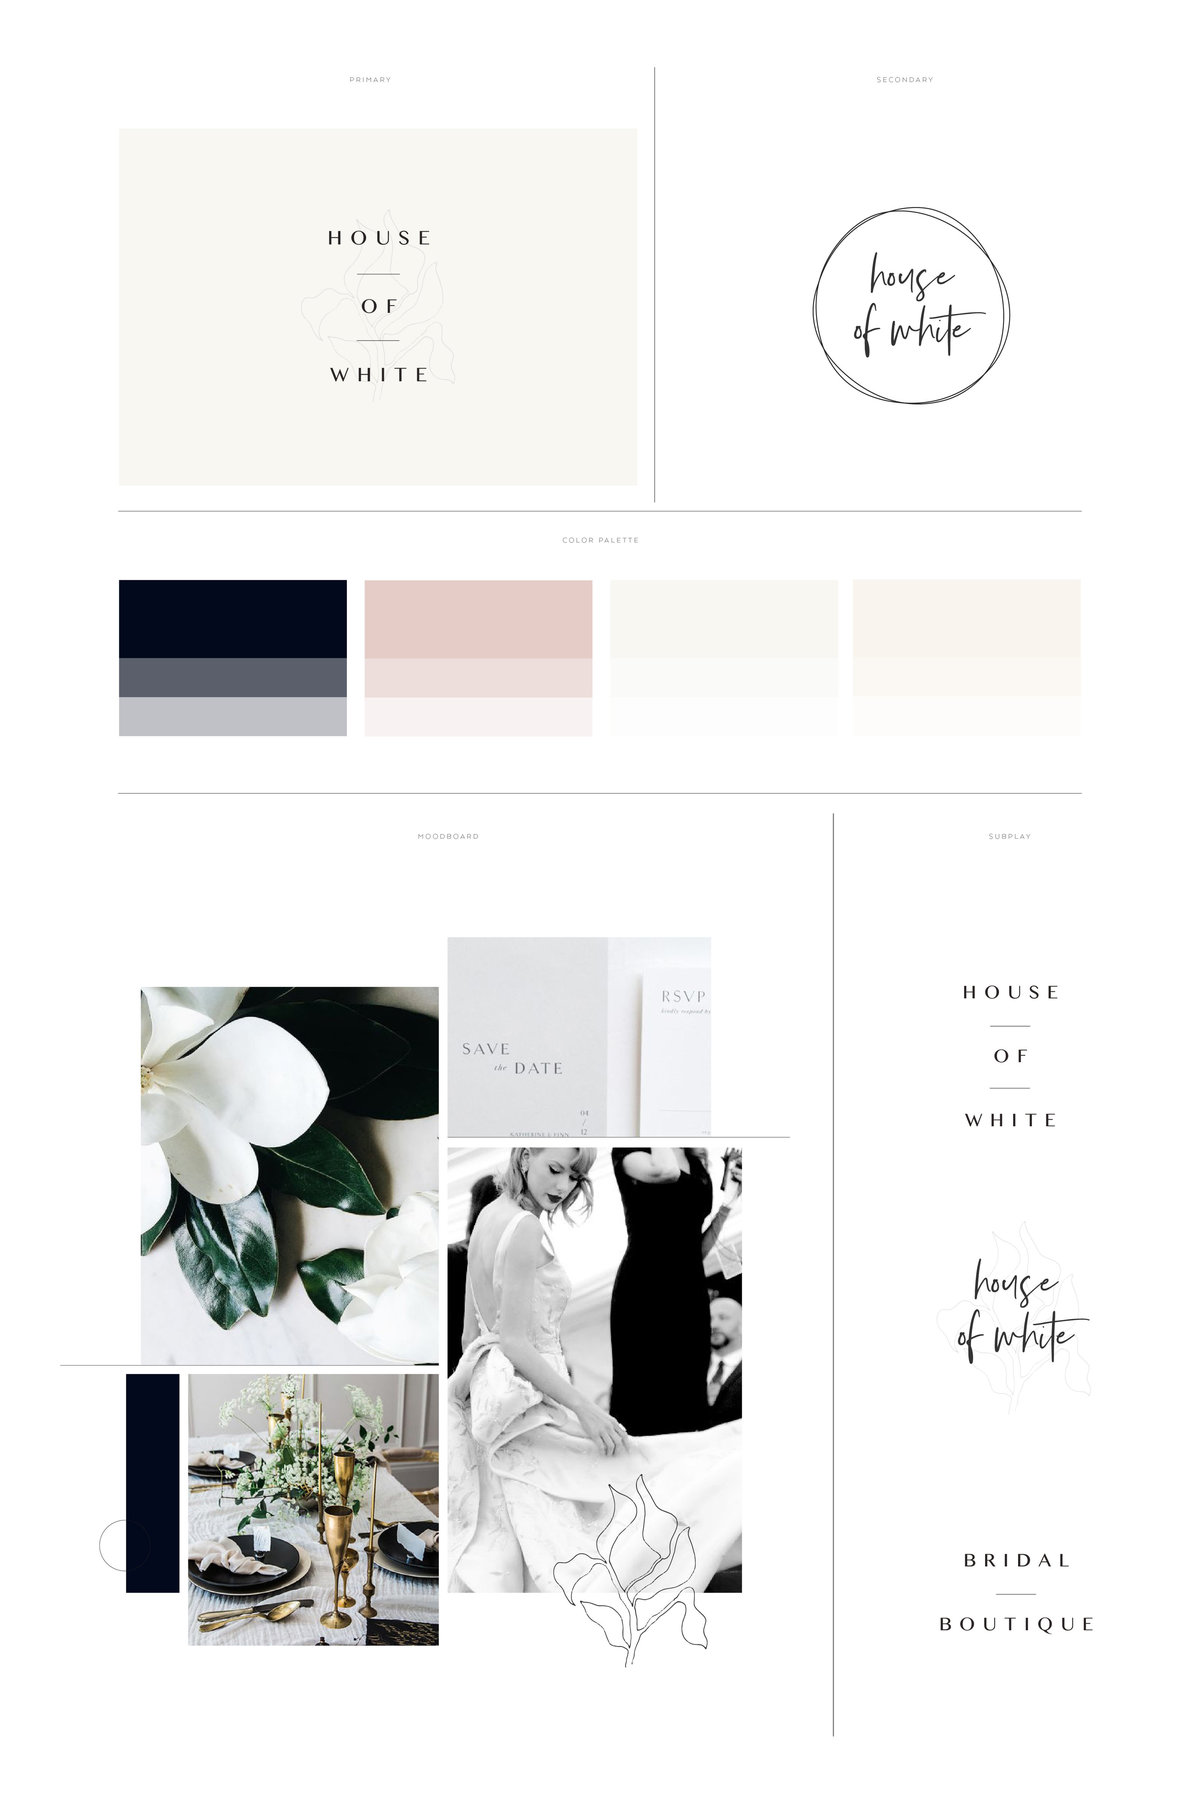 HOUSEOFWHITE_HONOR_BRANDBOARD_04